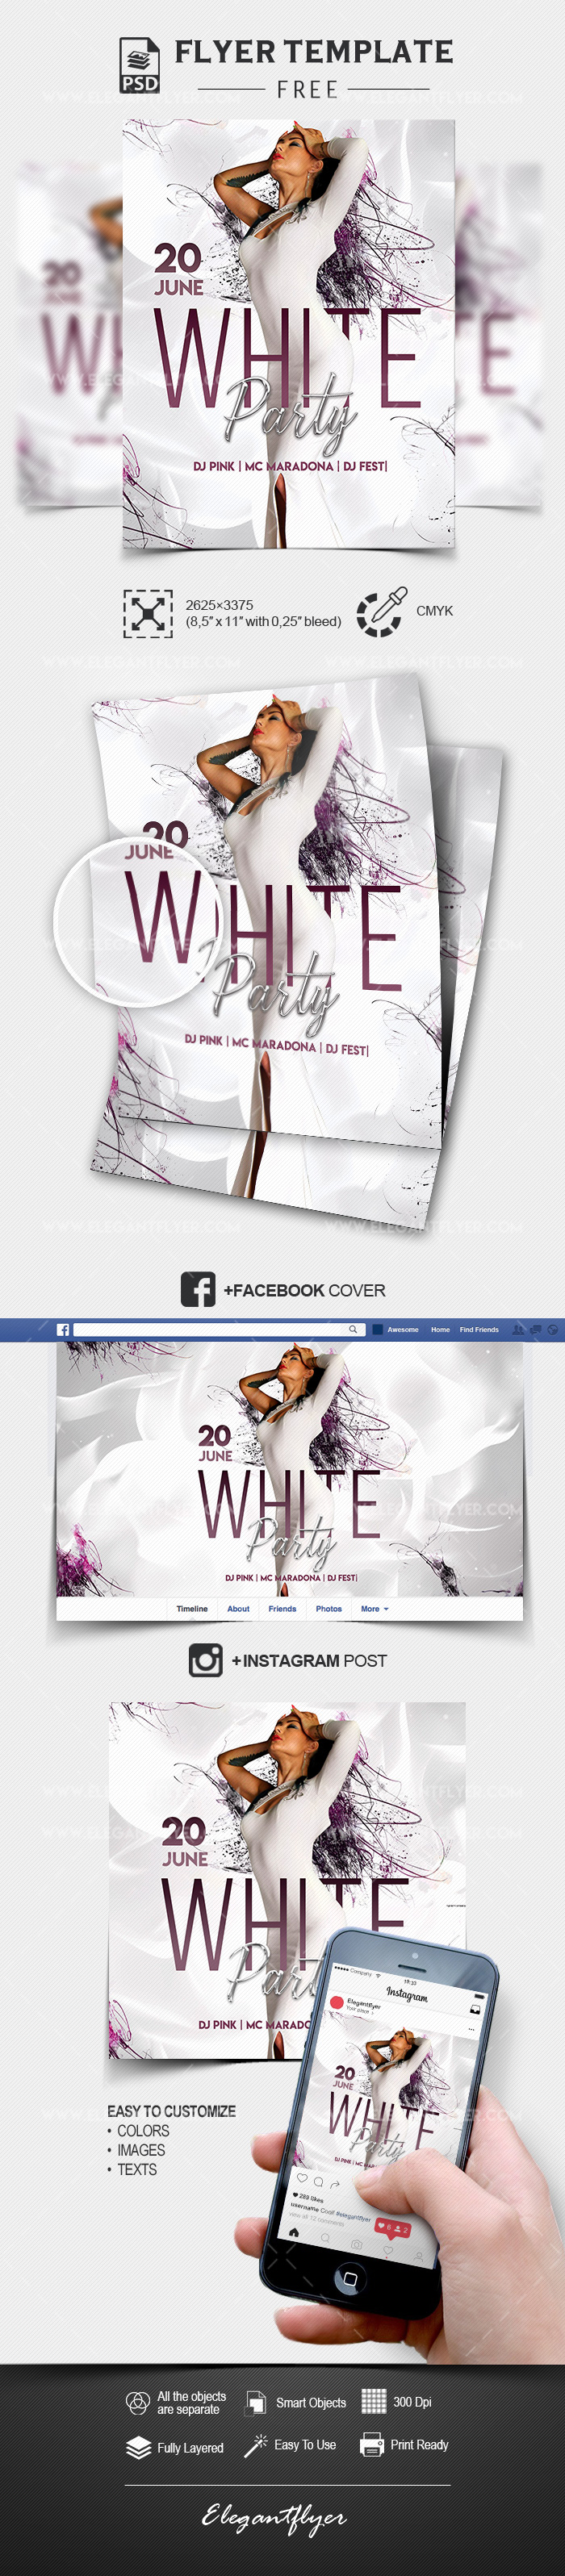 White Party – Free PSD Flyer Template + Facebook Cover + Instagram Post